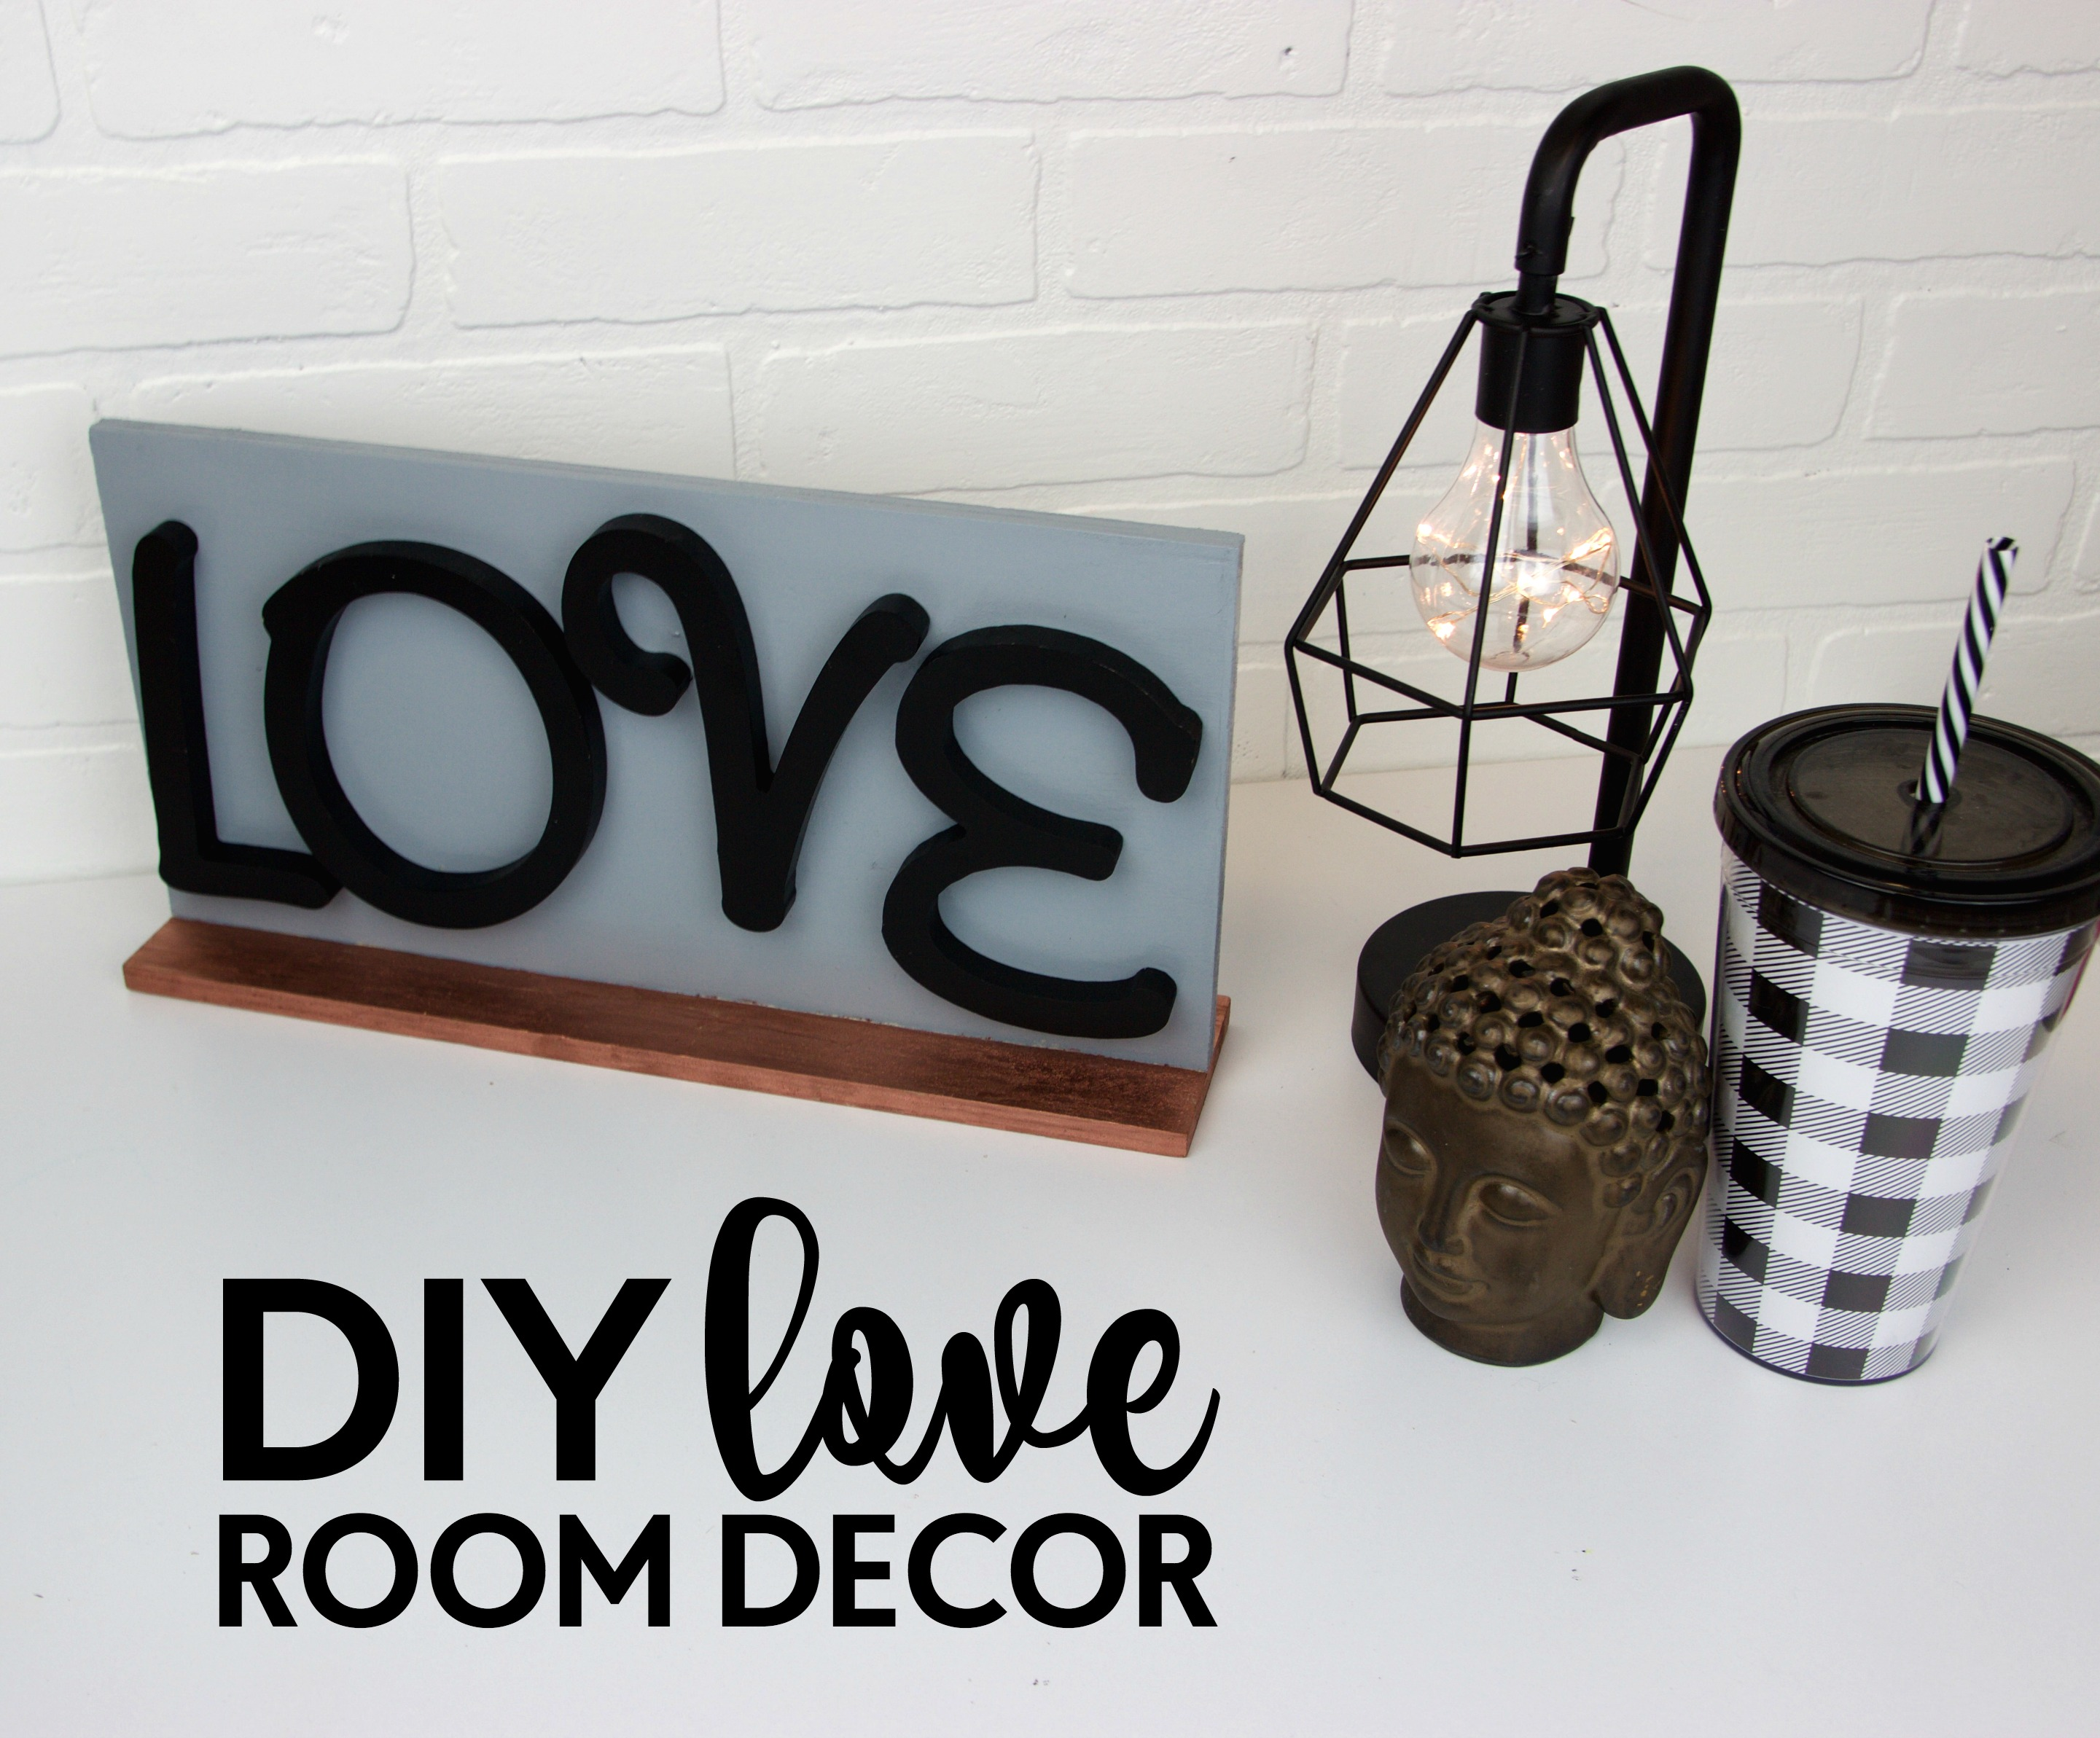 Diy love room decor a little craft in your day for Love room decor